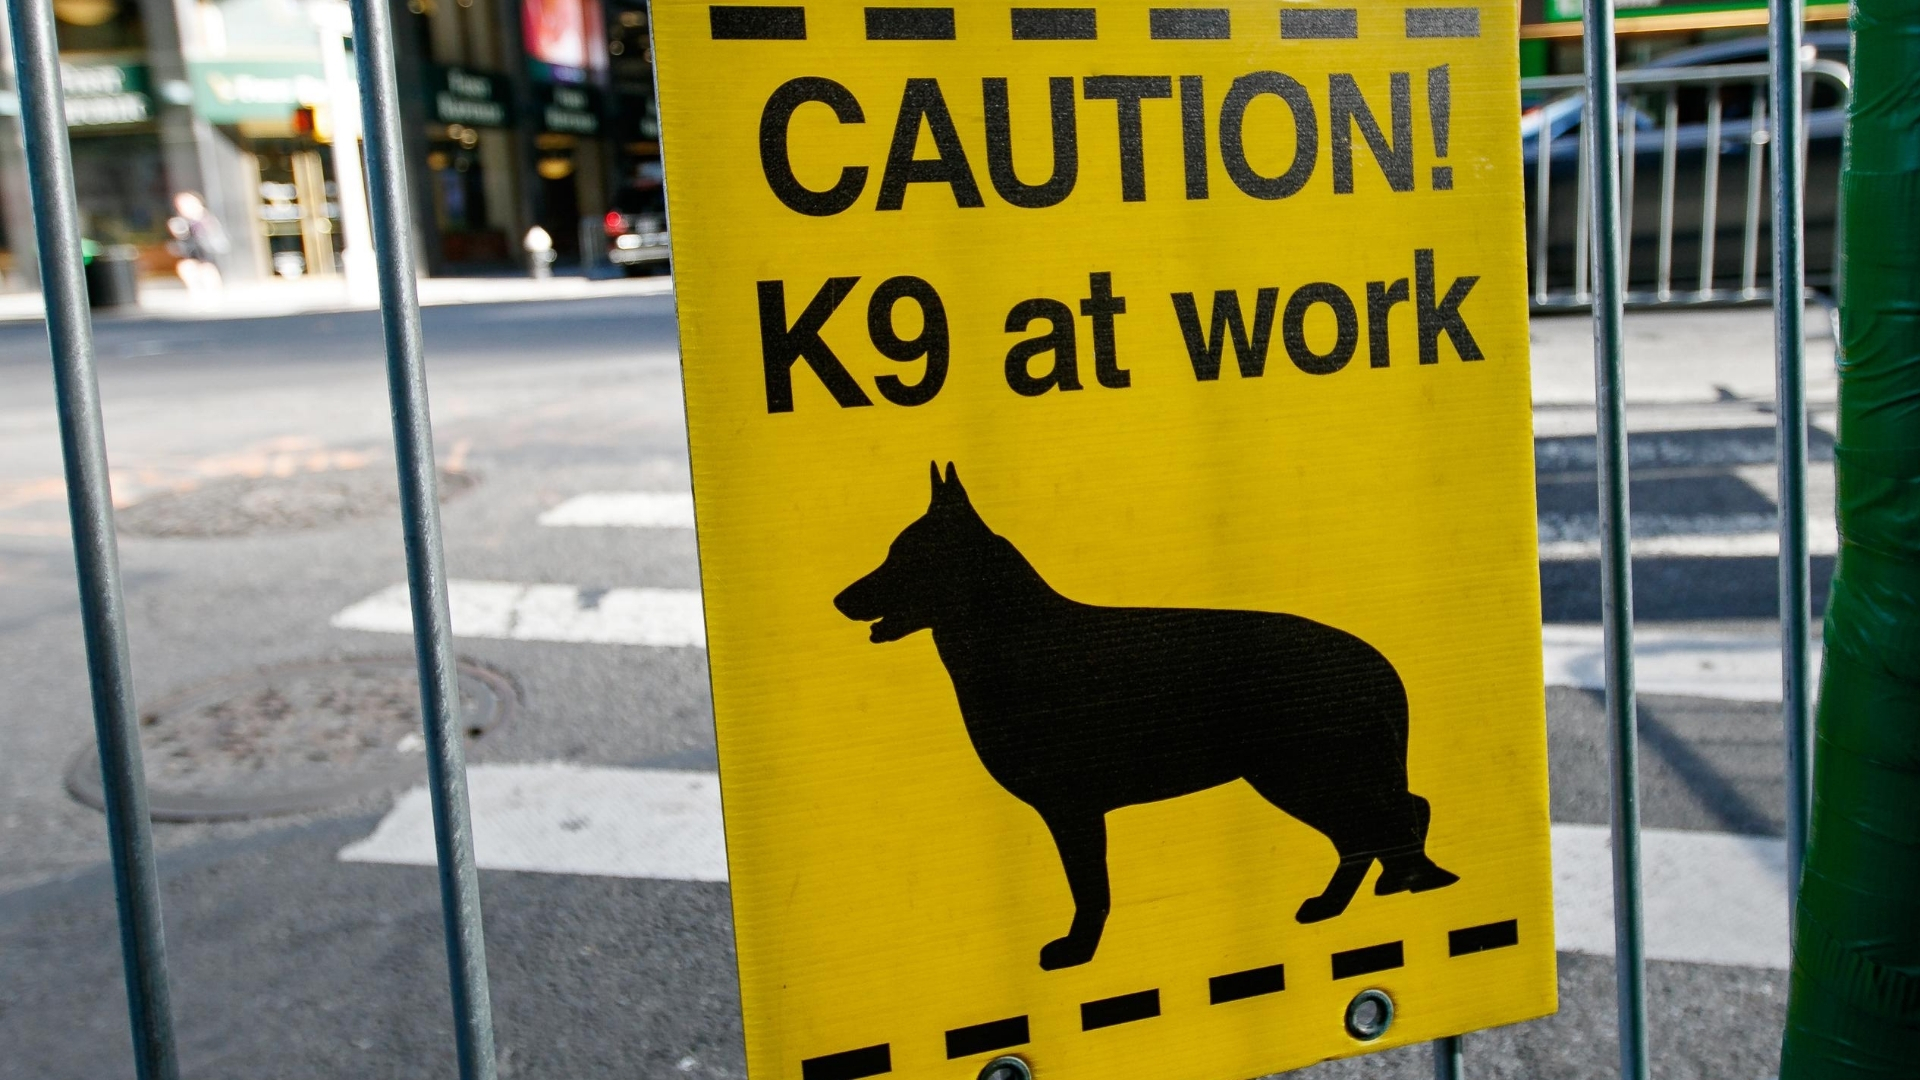 image of a sign that says Caution K9 at work with a graphic of a dog